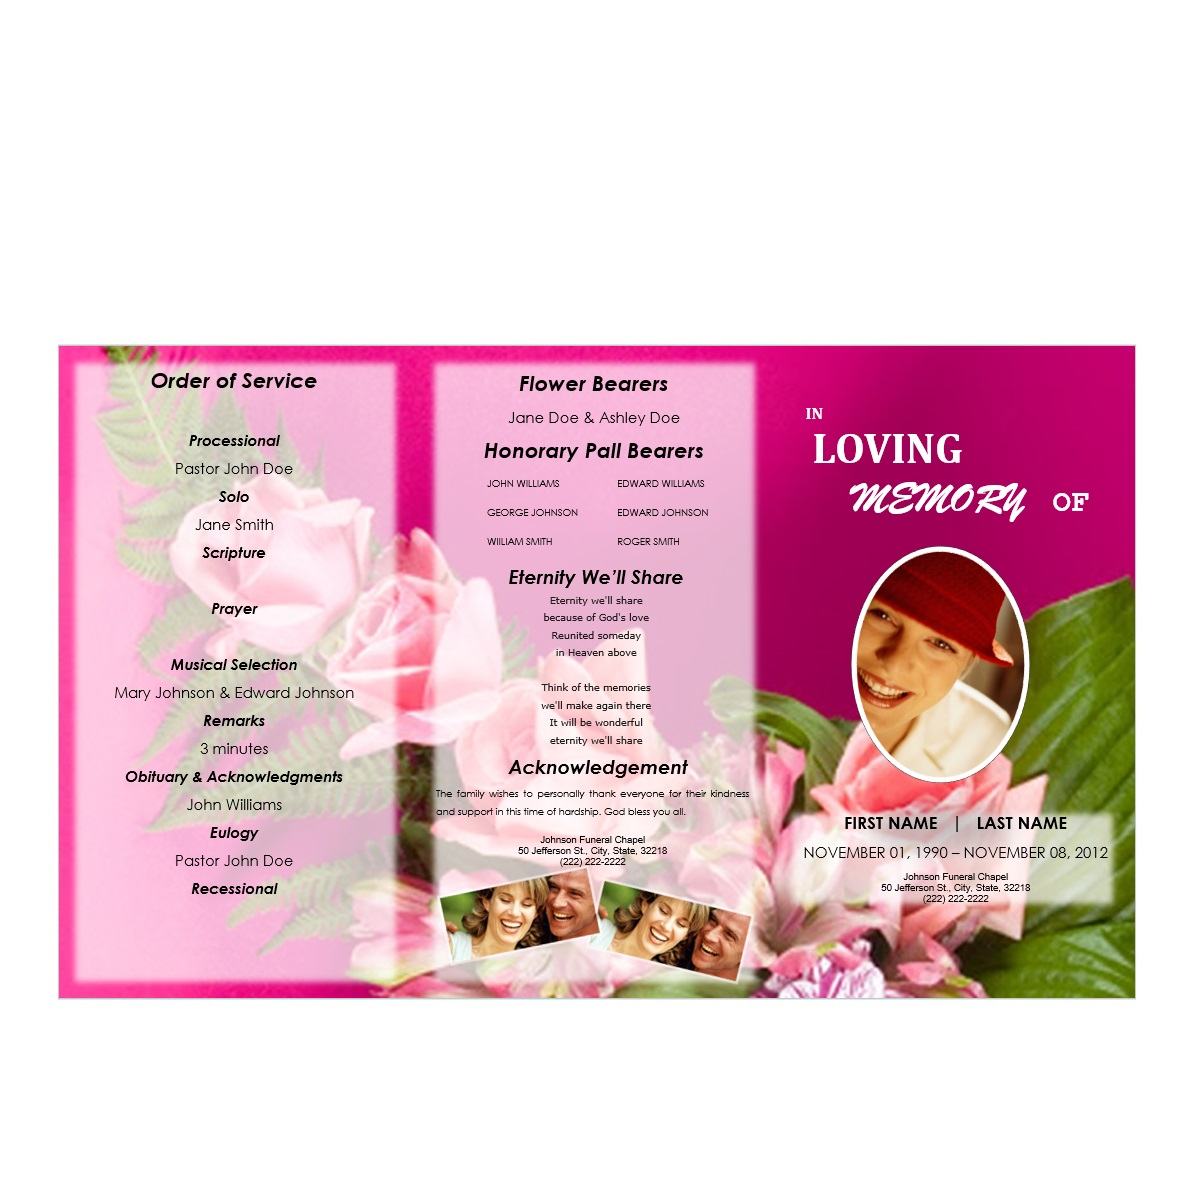 Floral 6 Tri Fold Brochure Program Funeral Pamphlets